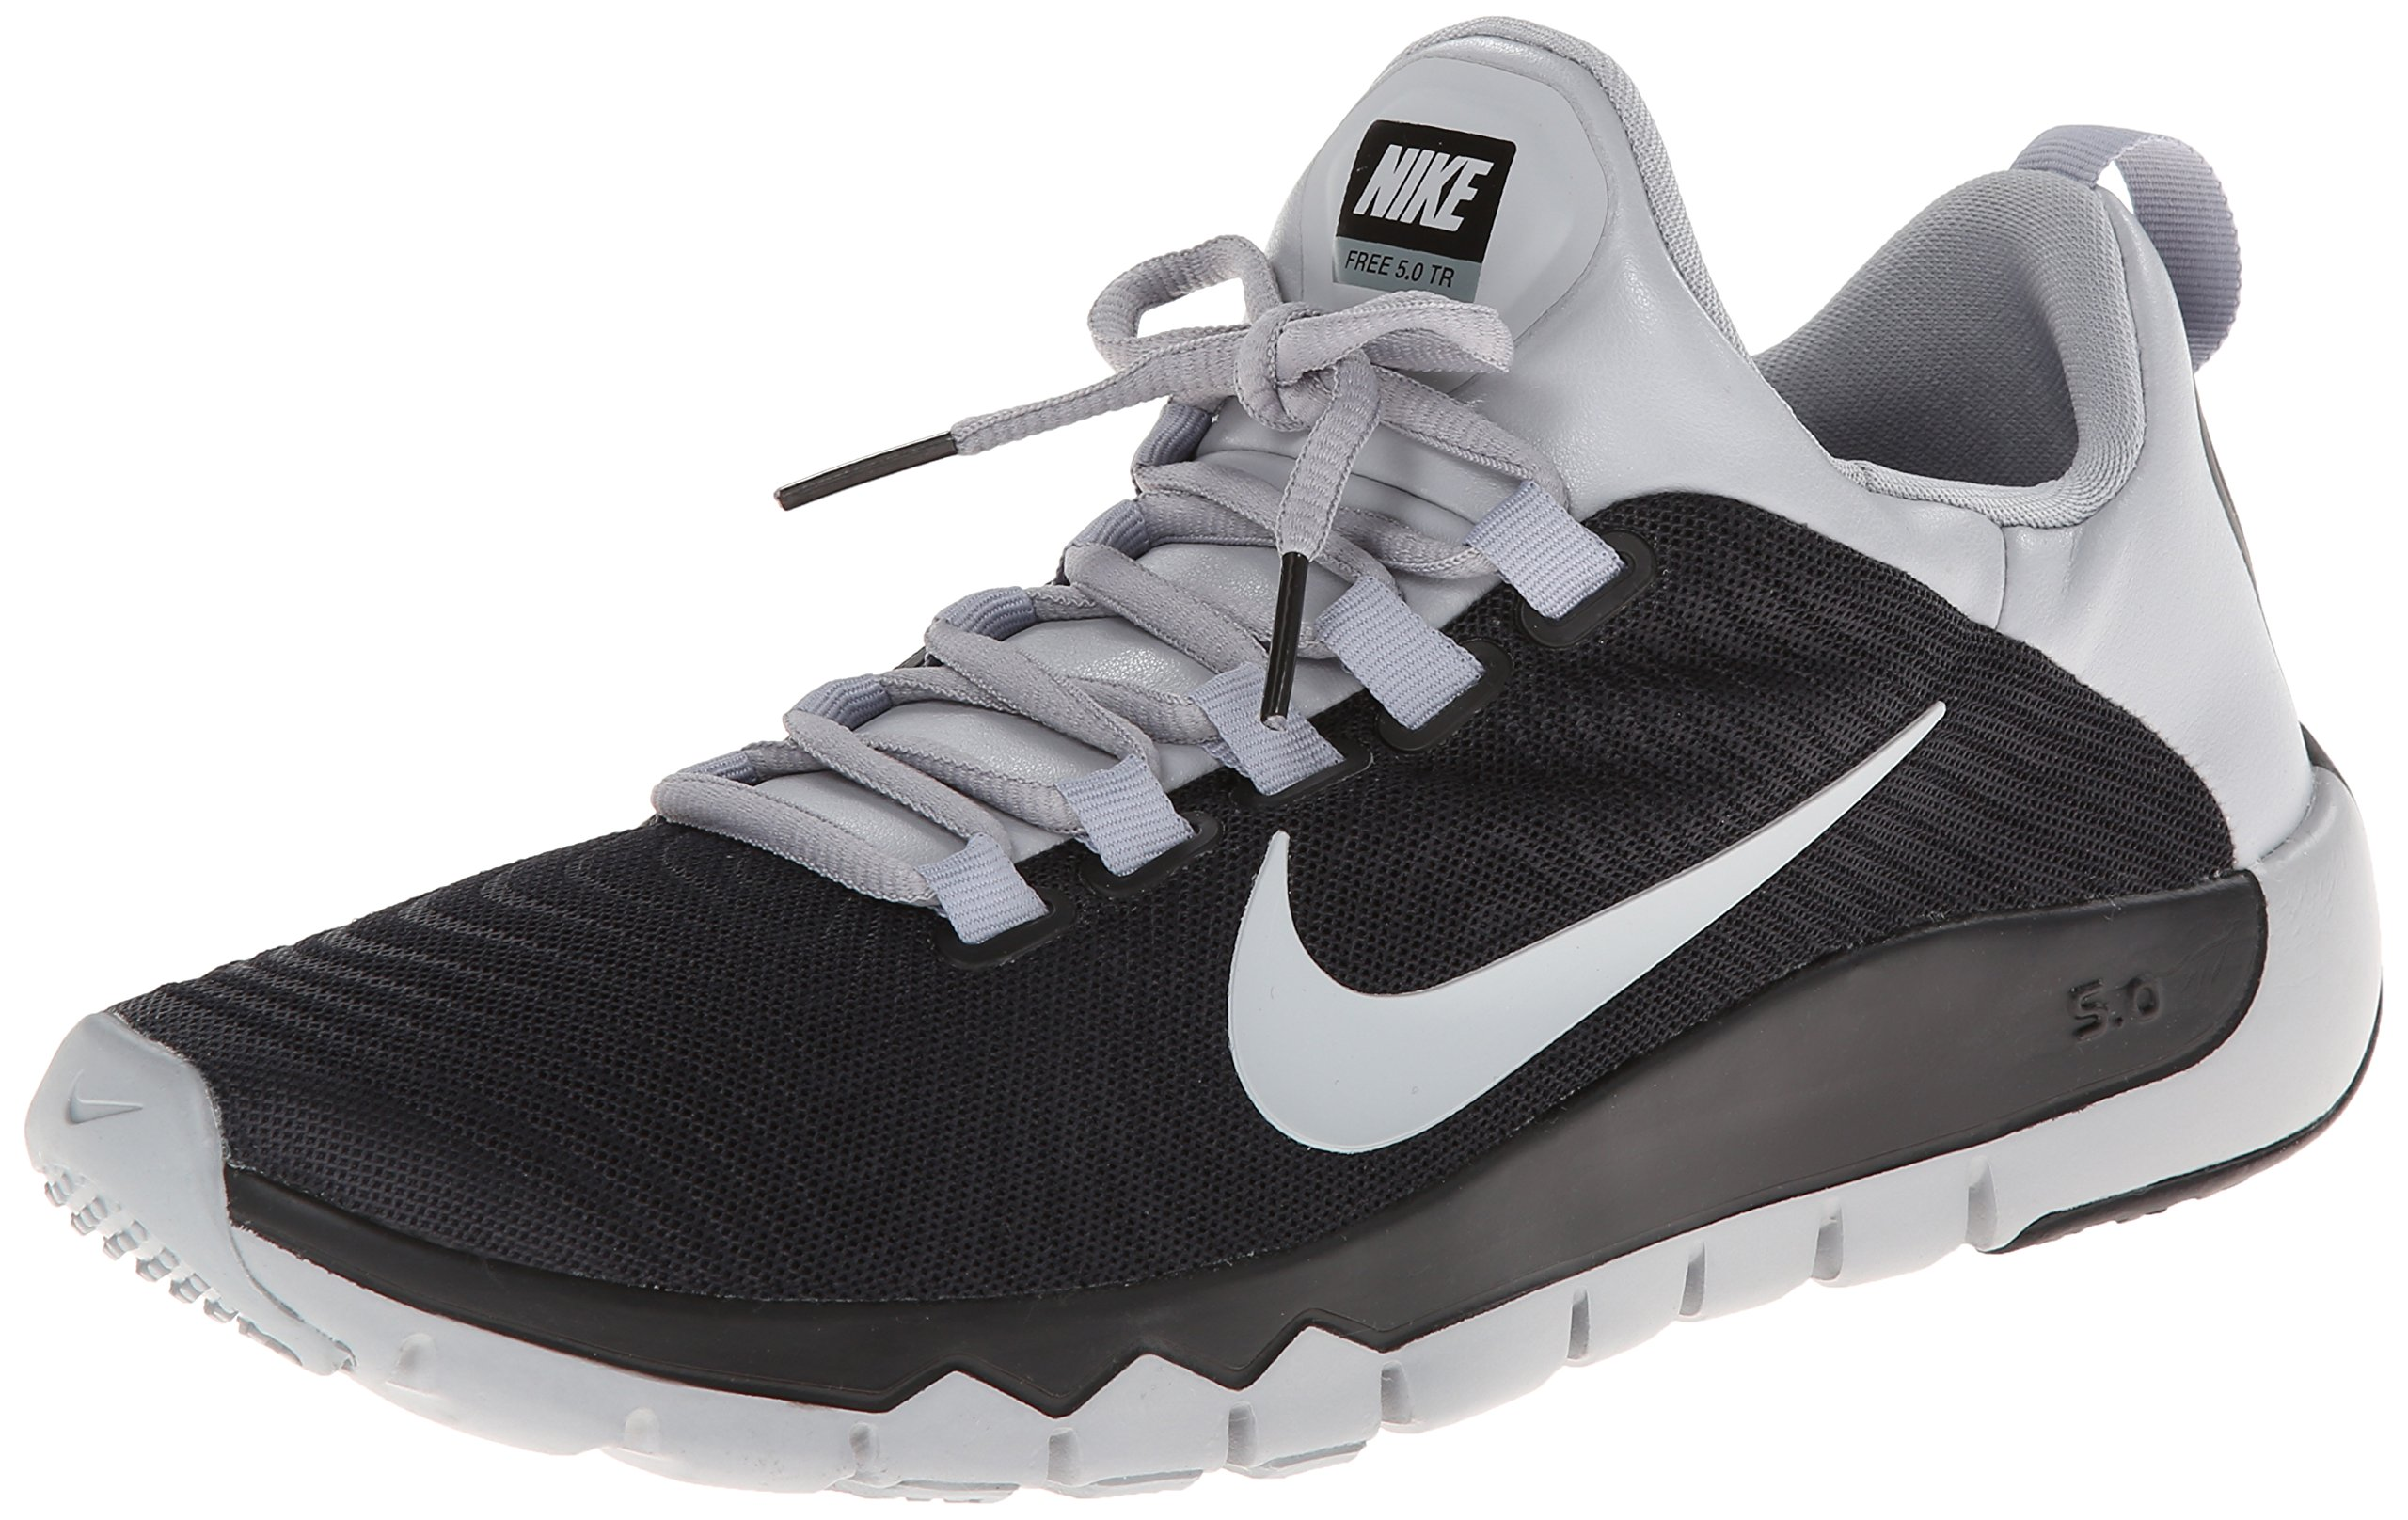 7e518cabad25d Galleon - Nike Mens Free Trainer 5.0 (V5) Training Shoes-Black   Wolf  Grey-9.5